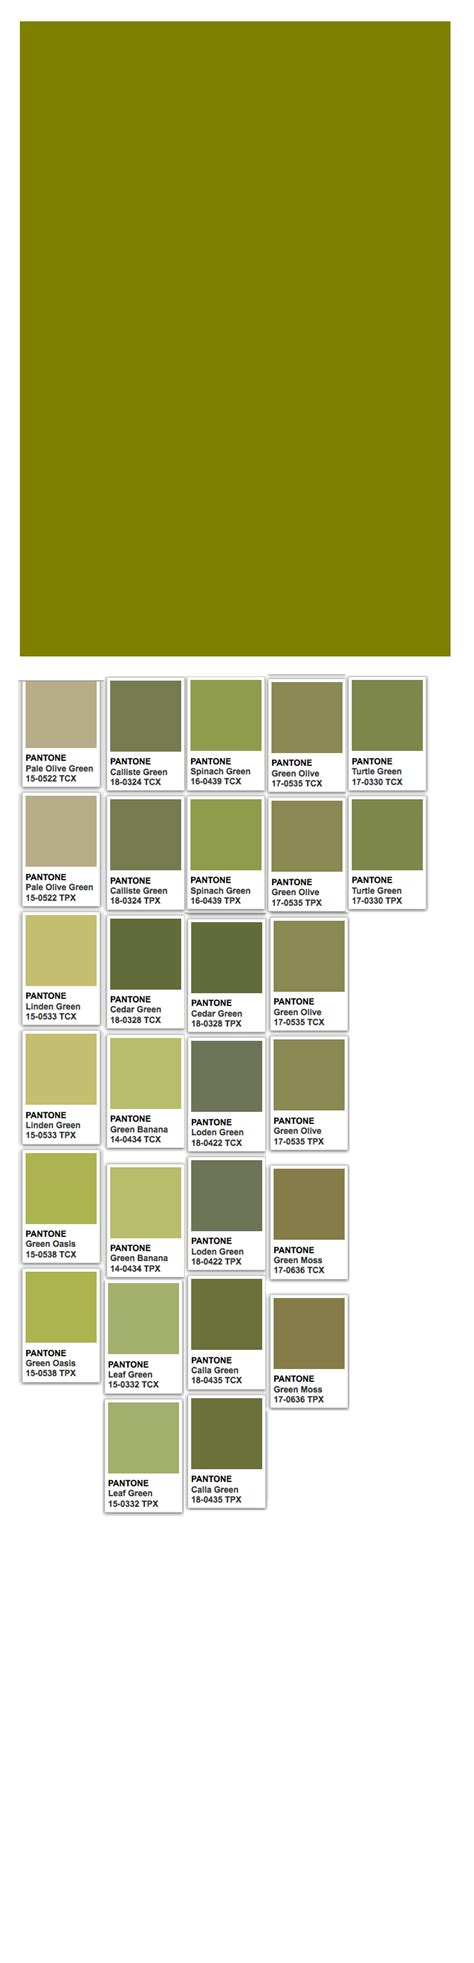 color olive olive web and pantone colors color thesaurus color